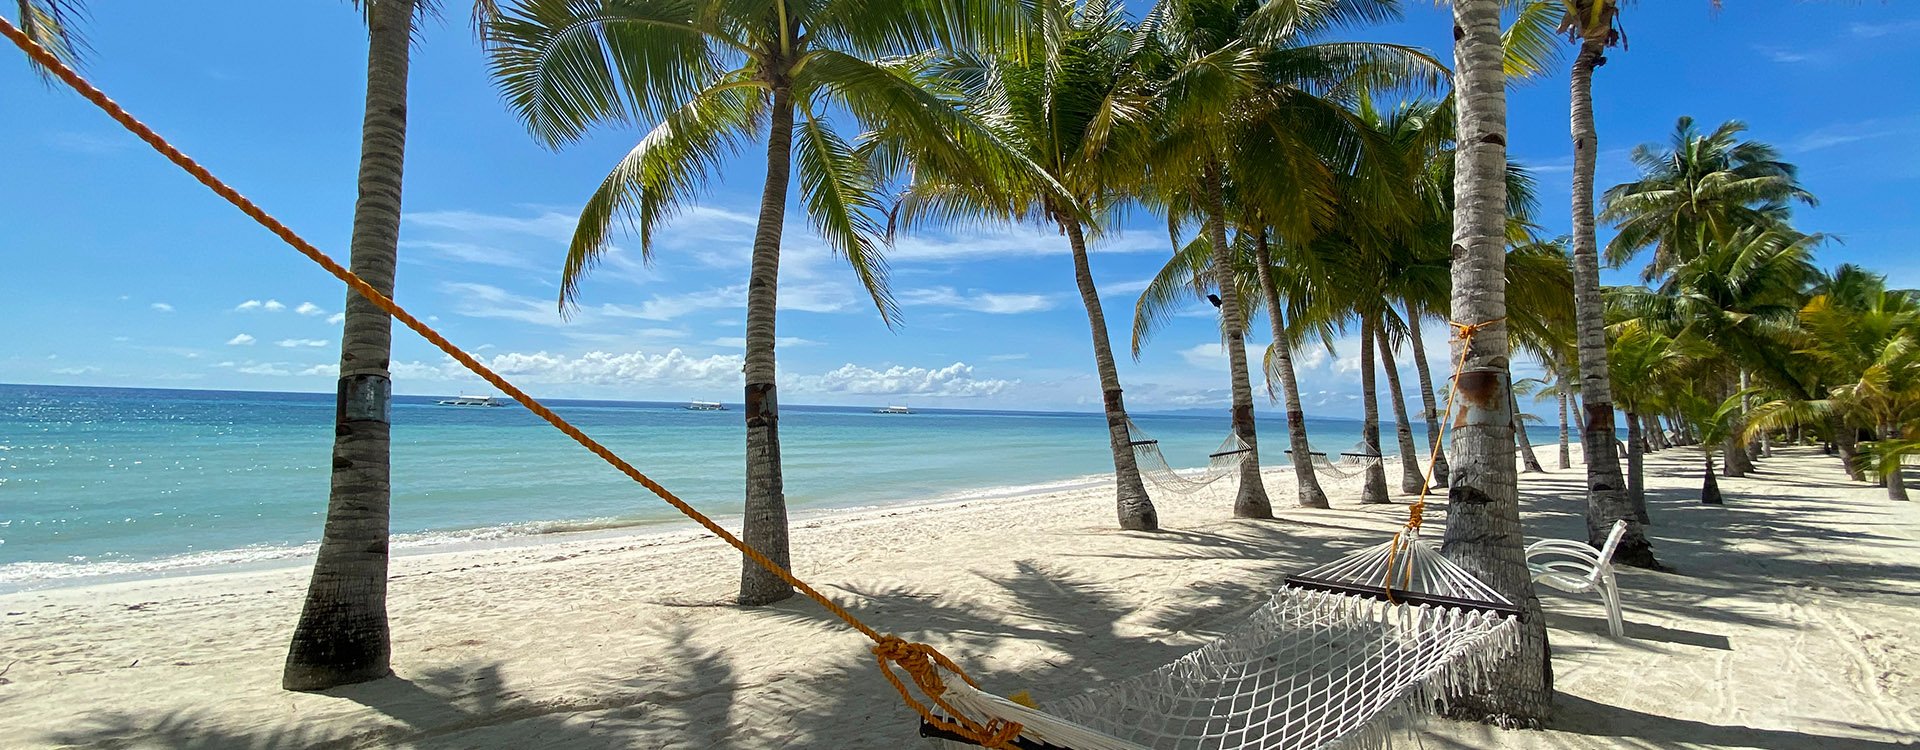 Relaxing hammock in a palm forest close-up, Beautiful white sandy beach